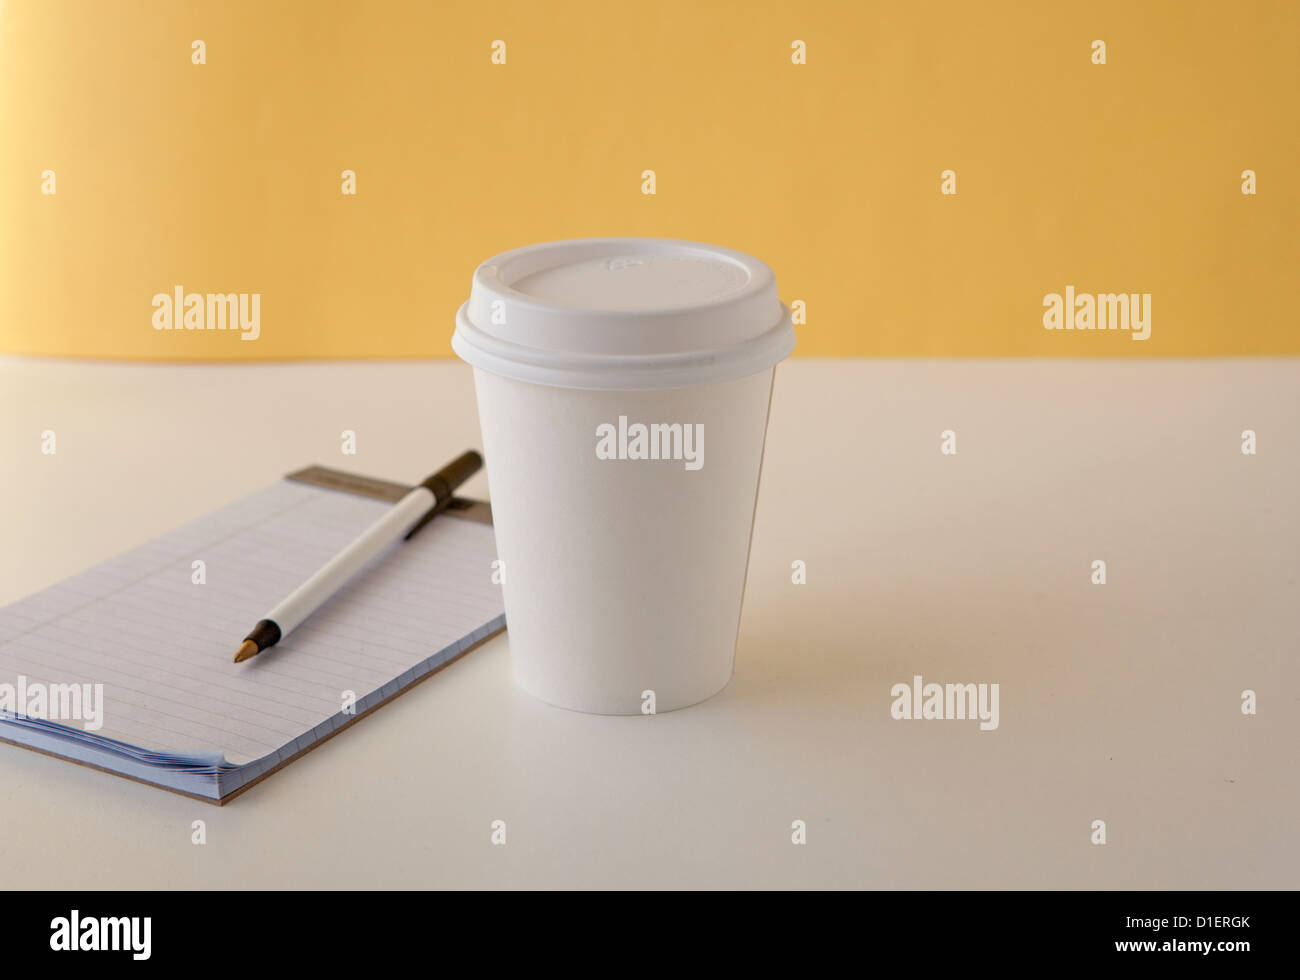 coffee or tea cup sits on table or desk - Stock Image